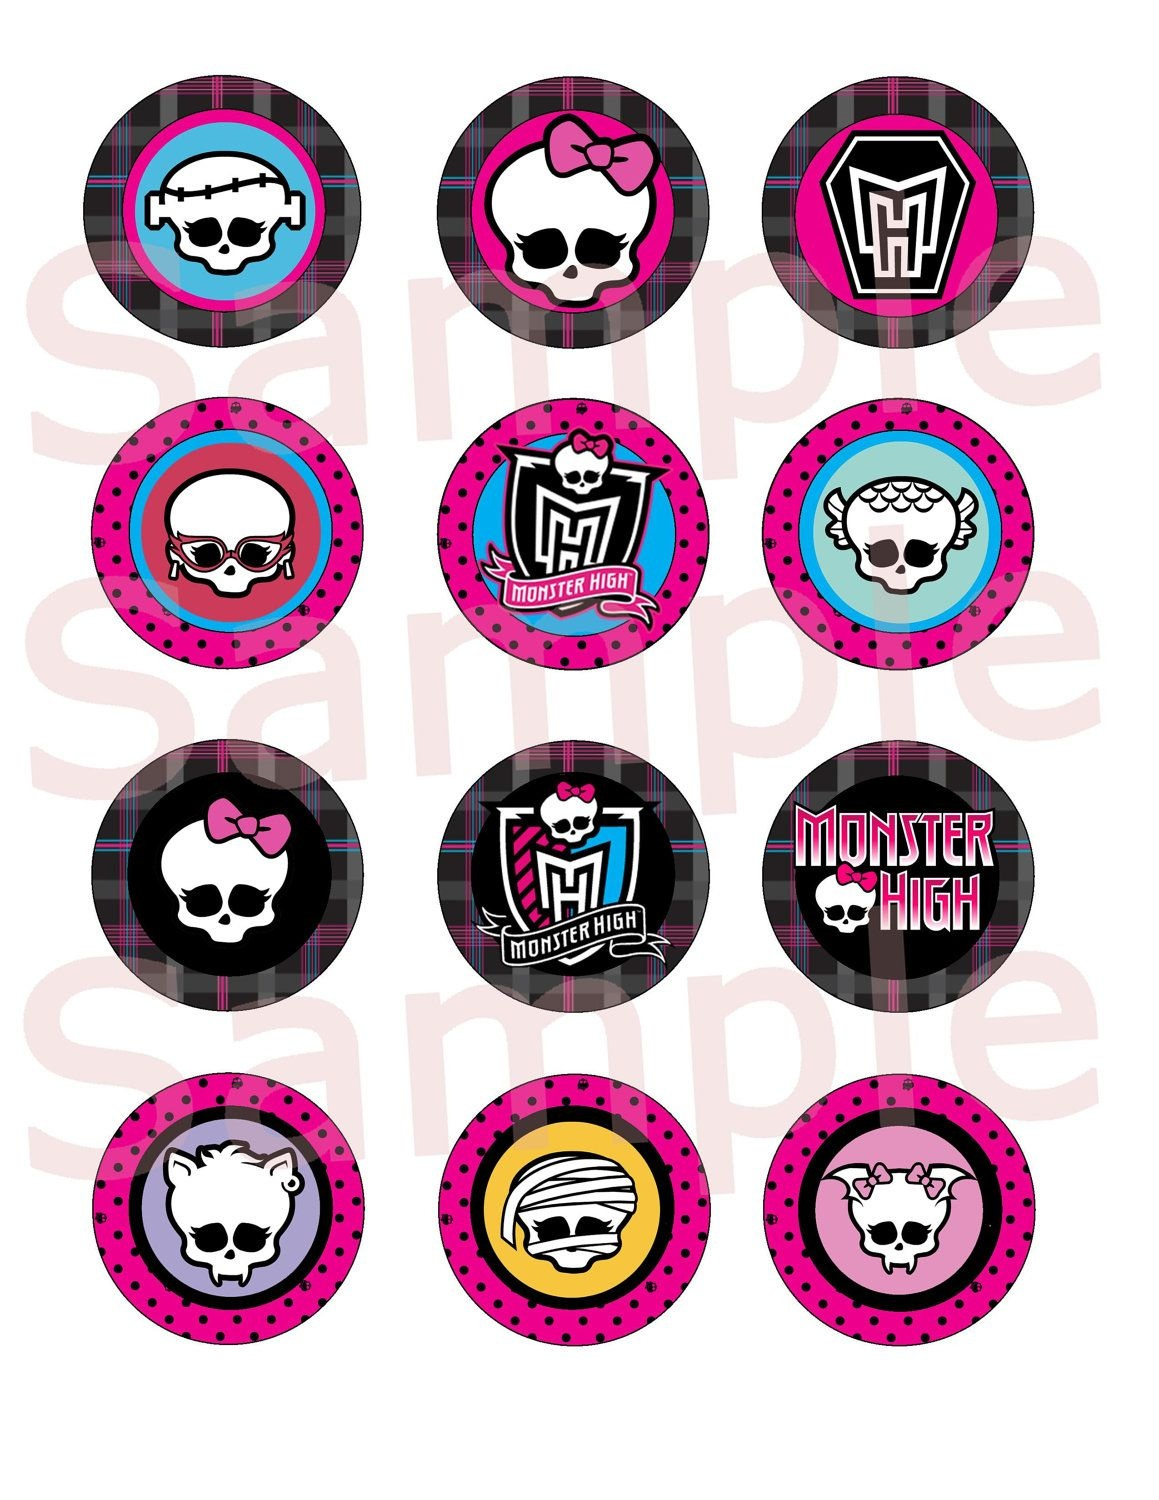 Printable Monster High 2 Cupcake Toppers Instantsimplybydrea - Monster High Cupcake Toppers Printable Free